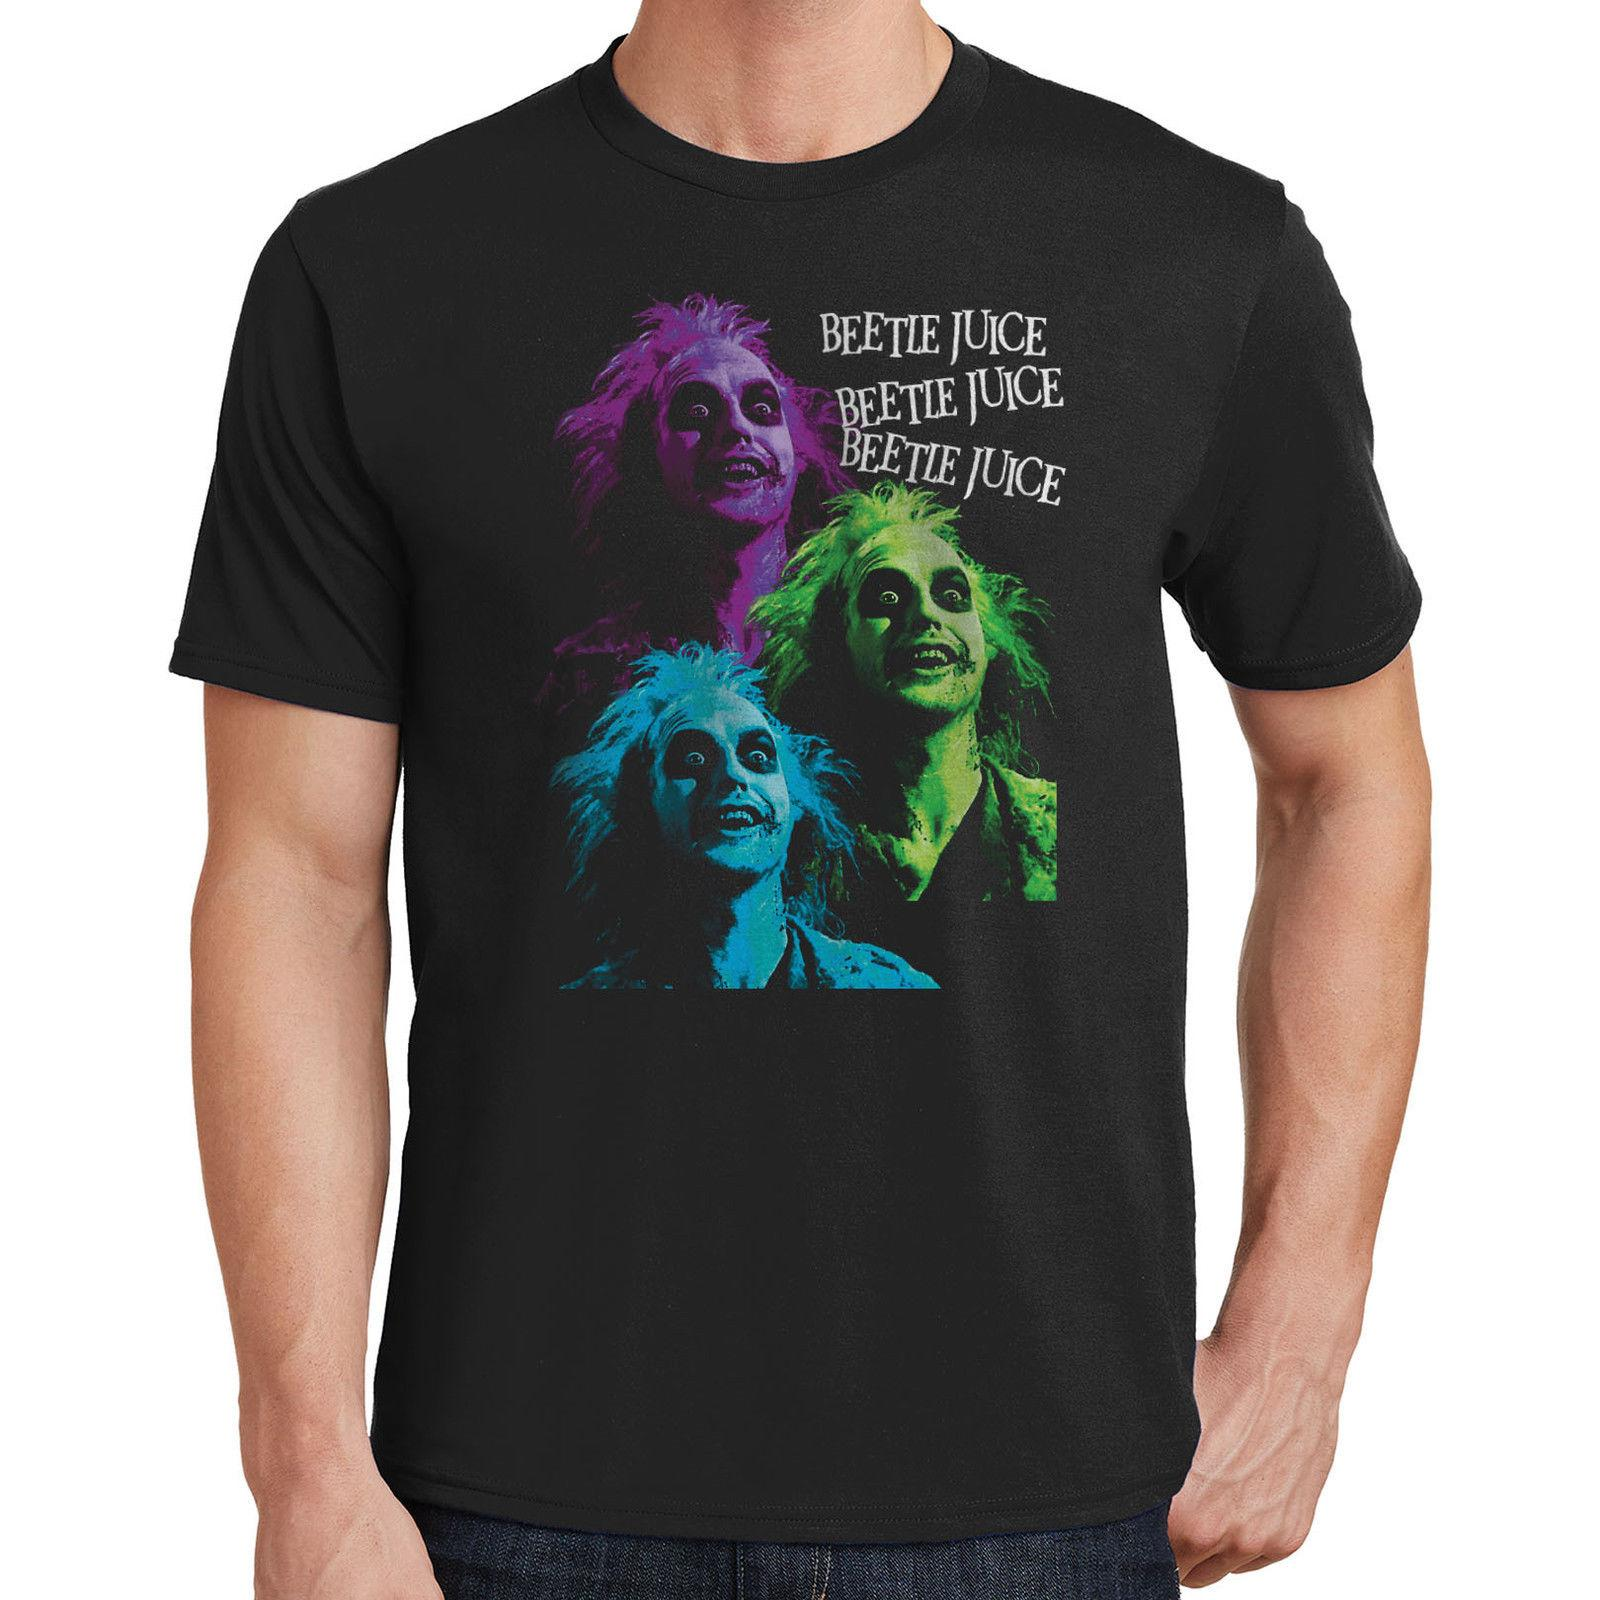 bb62cb7401f0 Beetlejuice Graphic T Shirt Cult Classic 80s Tim Burton Michael Keaton 286  Funny Casual Tee Buy Designer Shirts Great Tees From Fatcuckoo, $12.96|  DHgate.